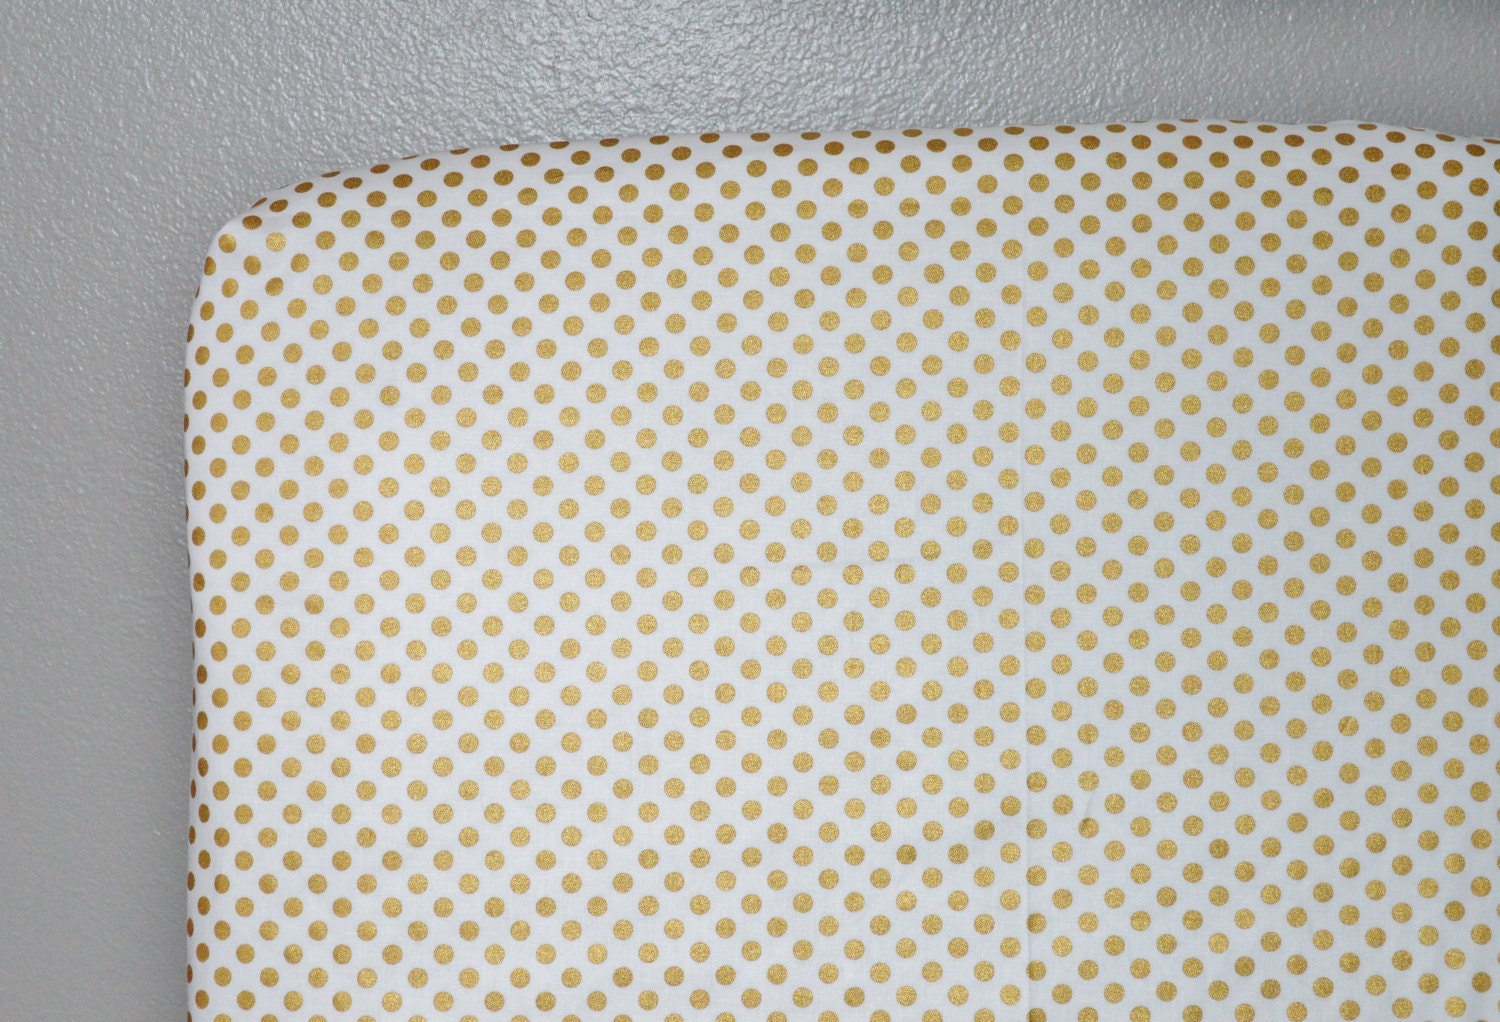 Metallic Gold Dot Fabric Metallic Gold Dots